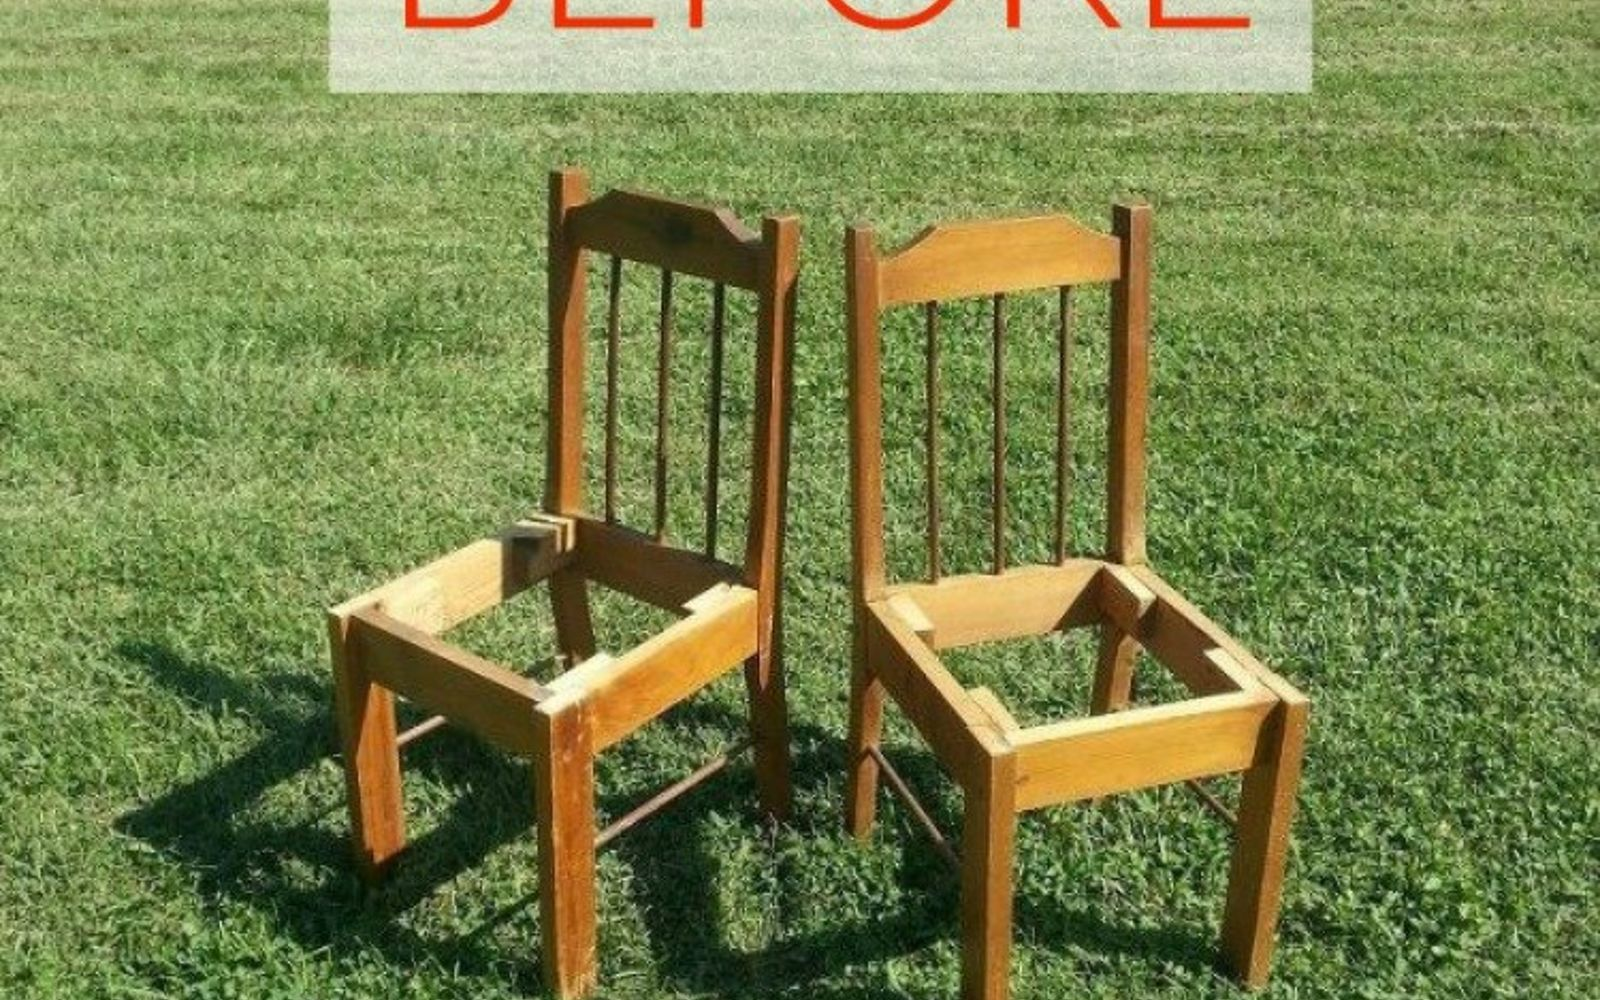 s 10 surprising ways to turn old furniture into extra seating, painted furniture, Before two broken wooden chairs